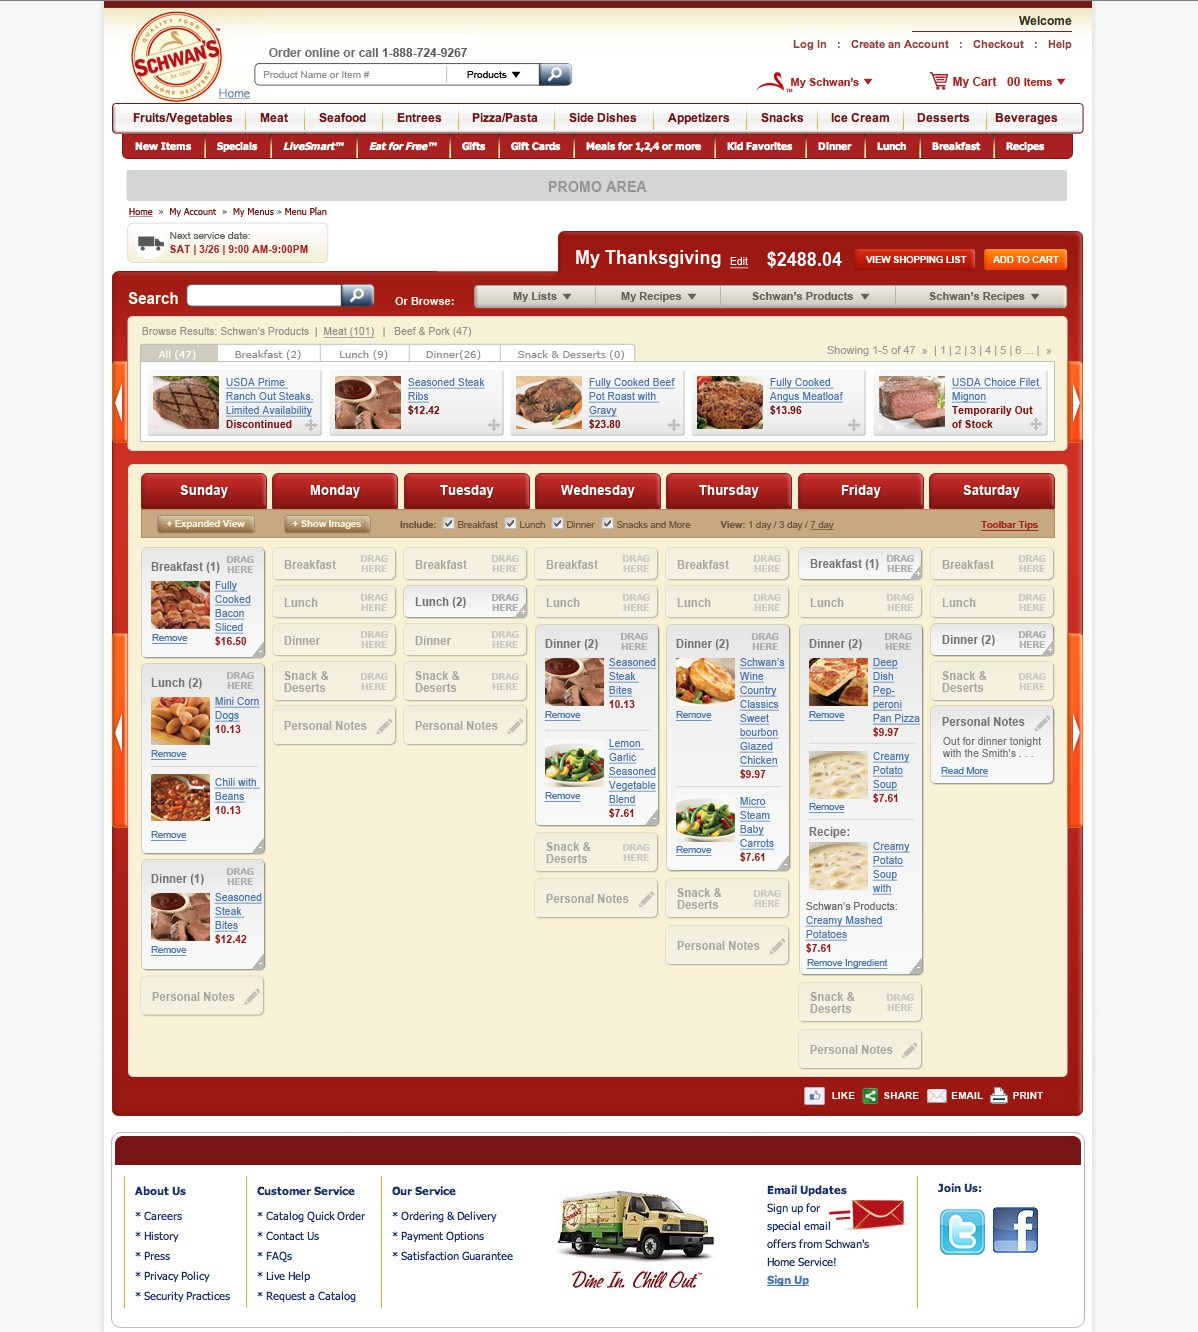 Schwans Meal Planning Tool